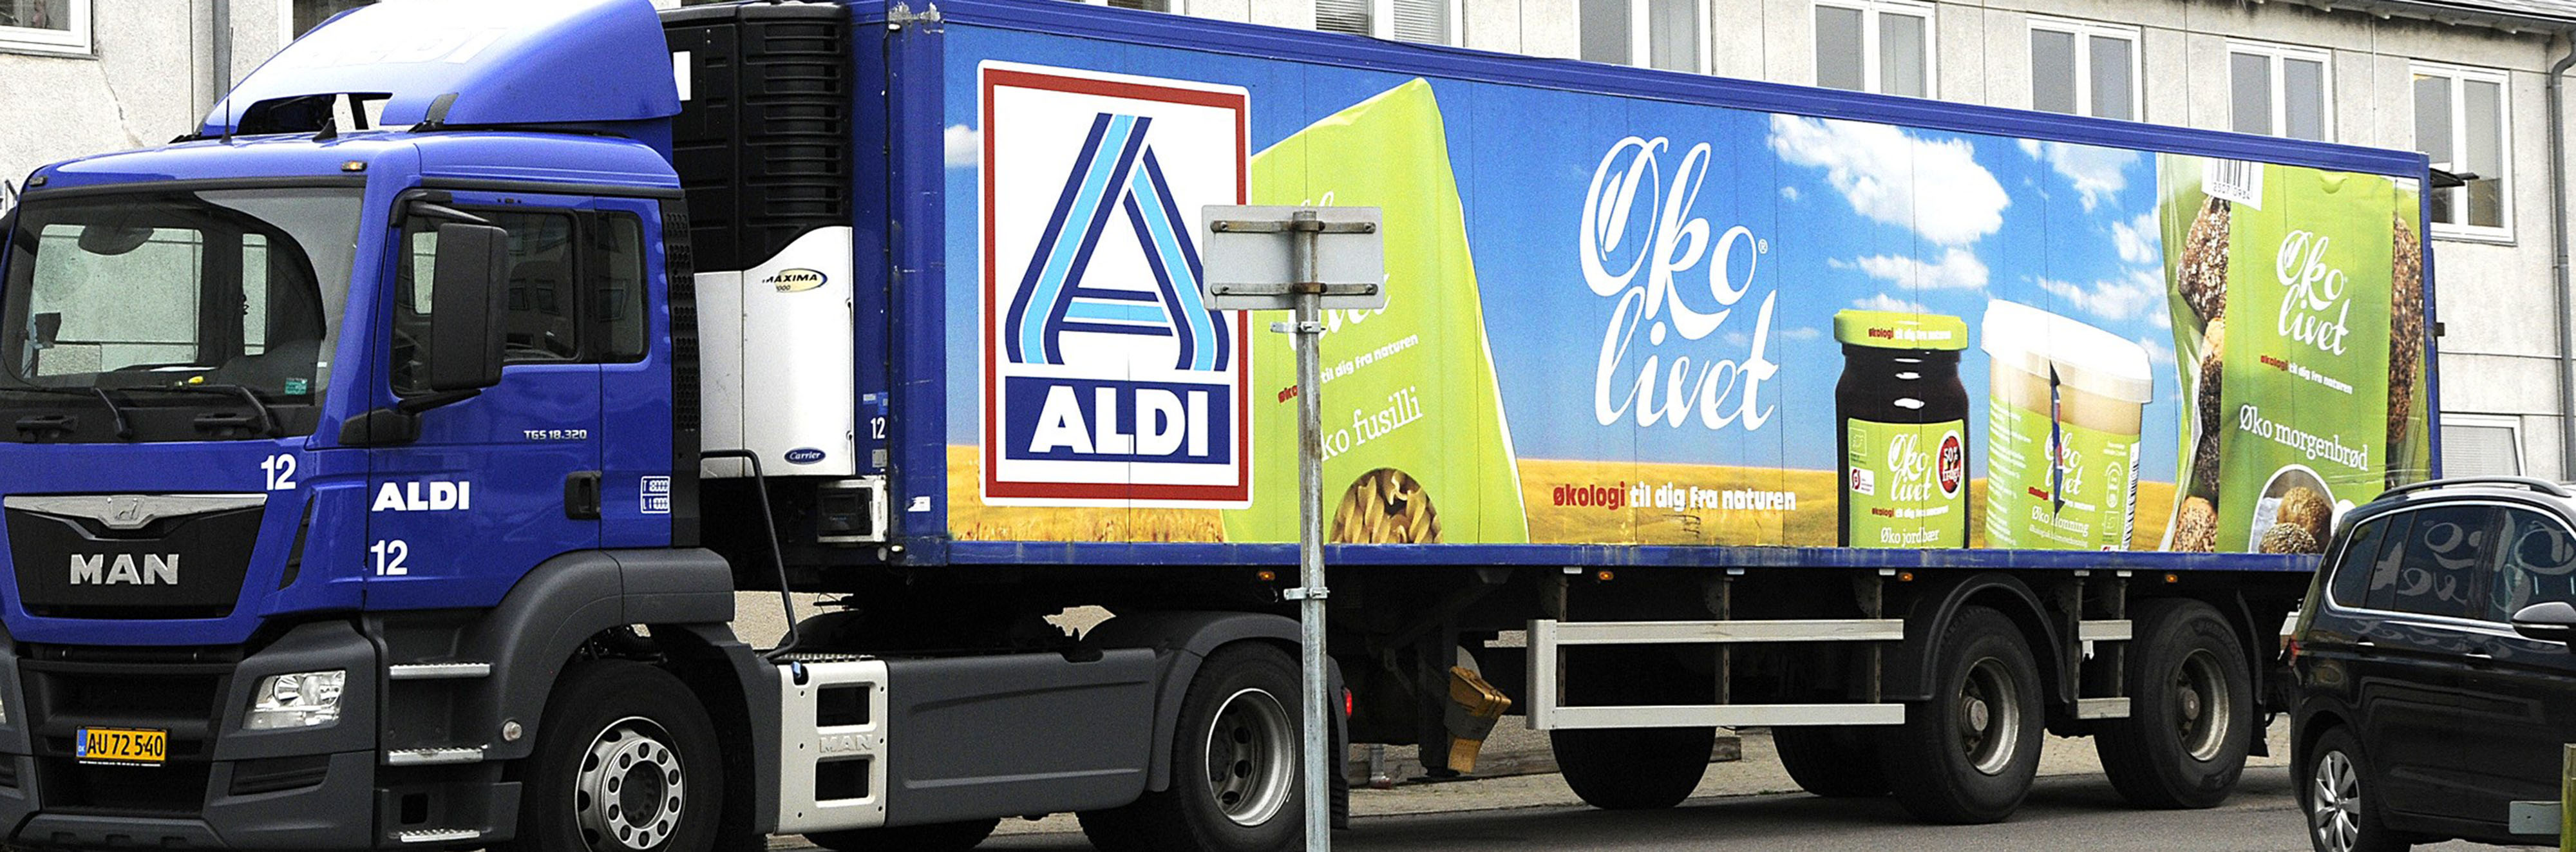 Danish Aldi truck. Illustration